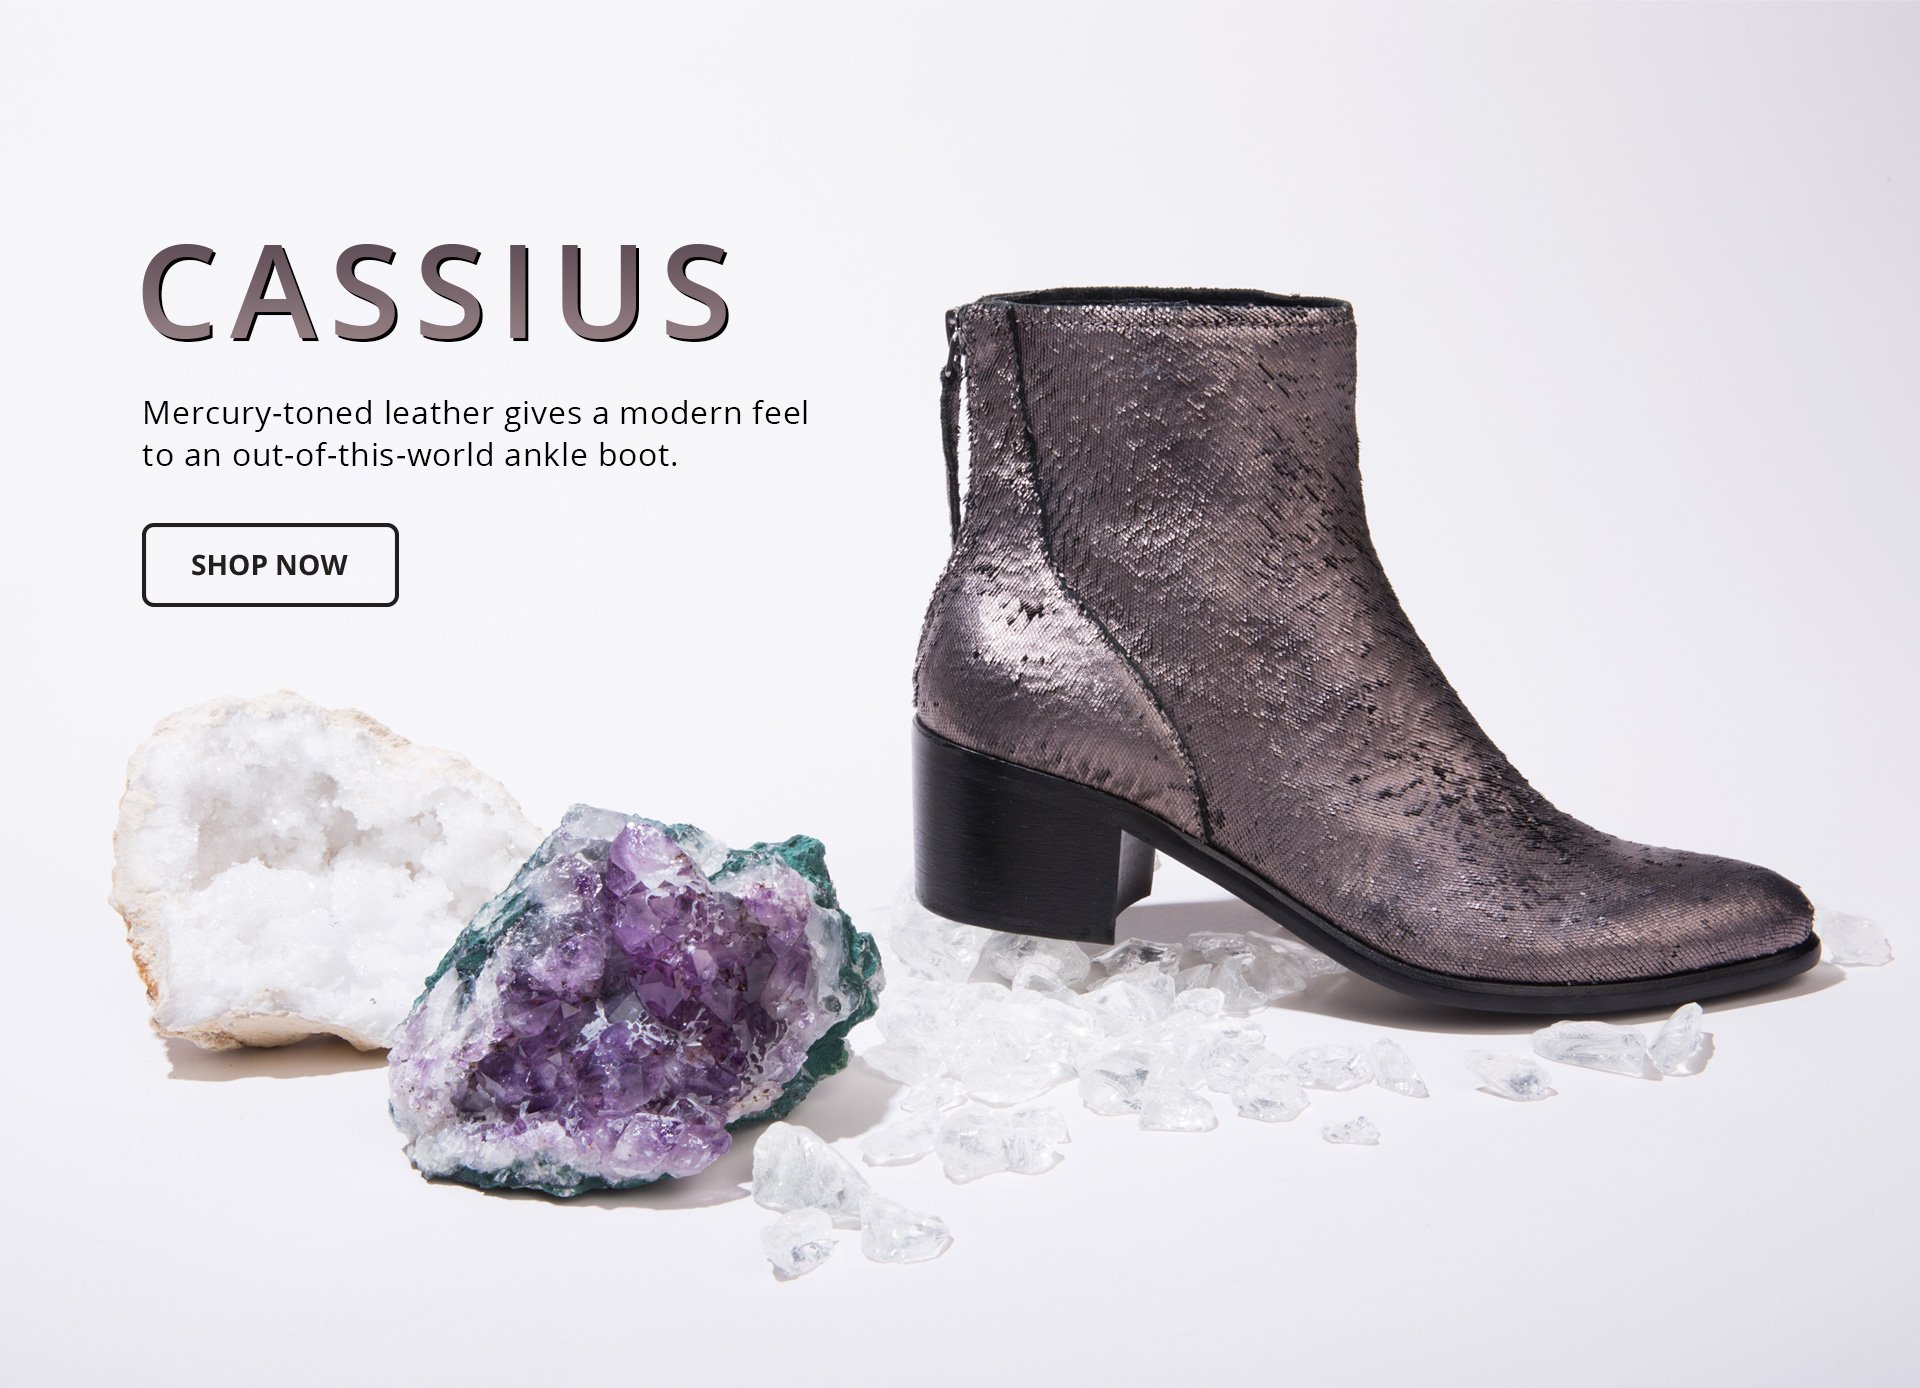 Cassius. Mercury-toned leather gives a modern feel to an out-of-this-world ankle boot. Shop Now.